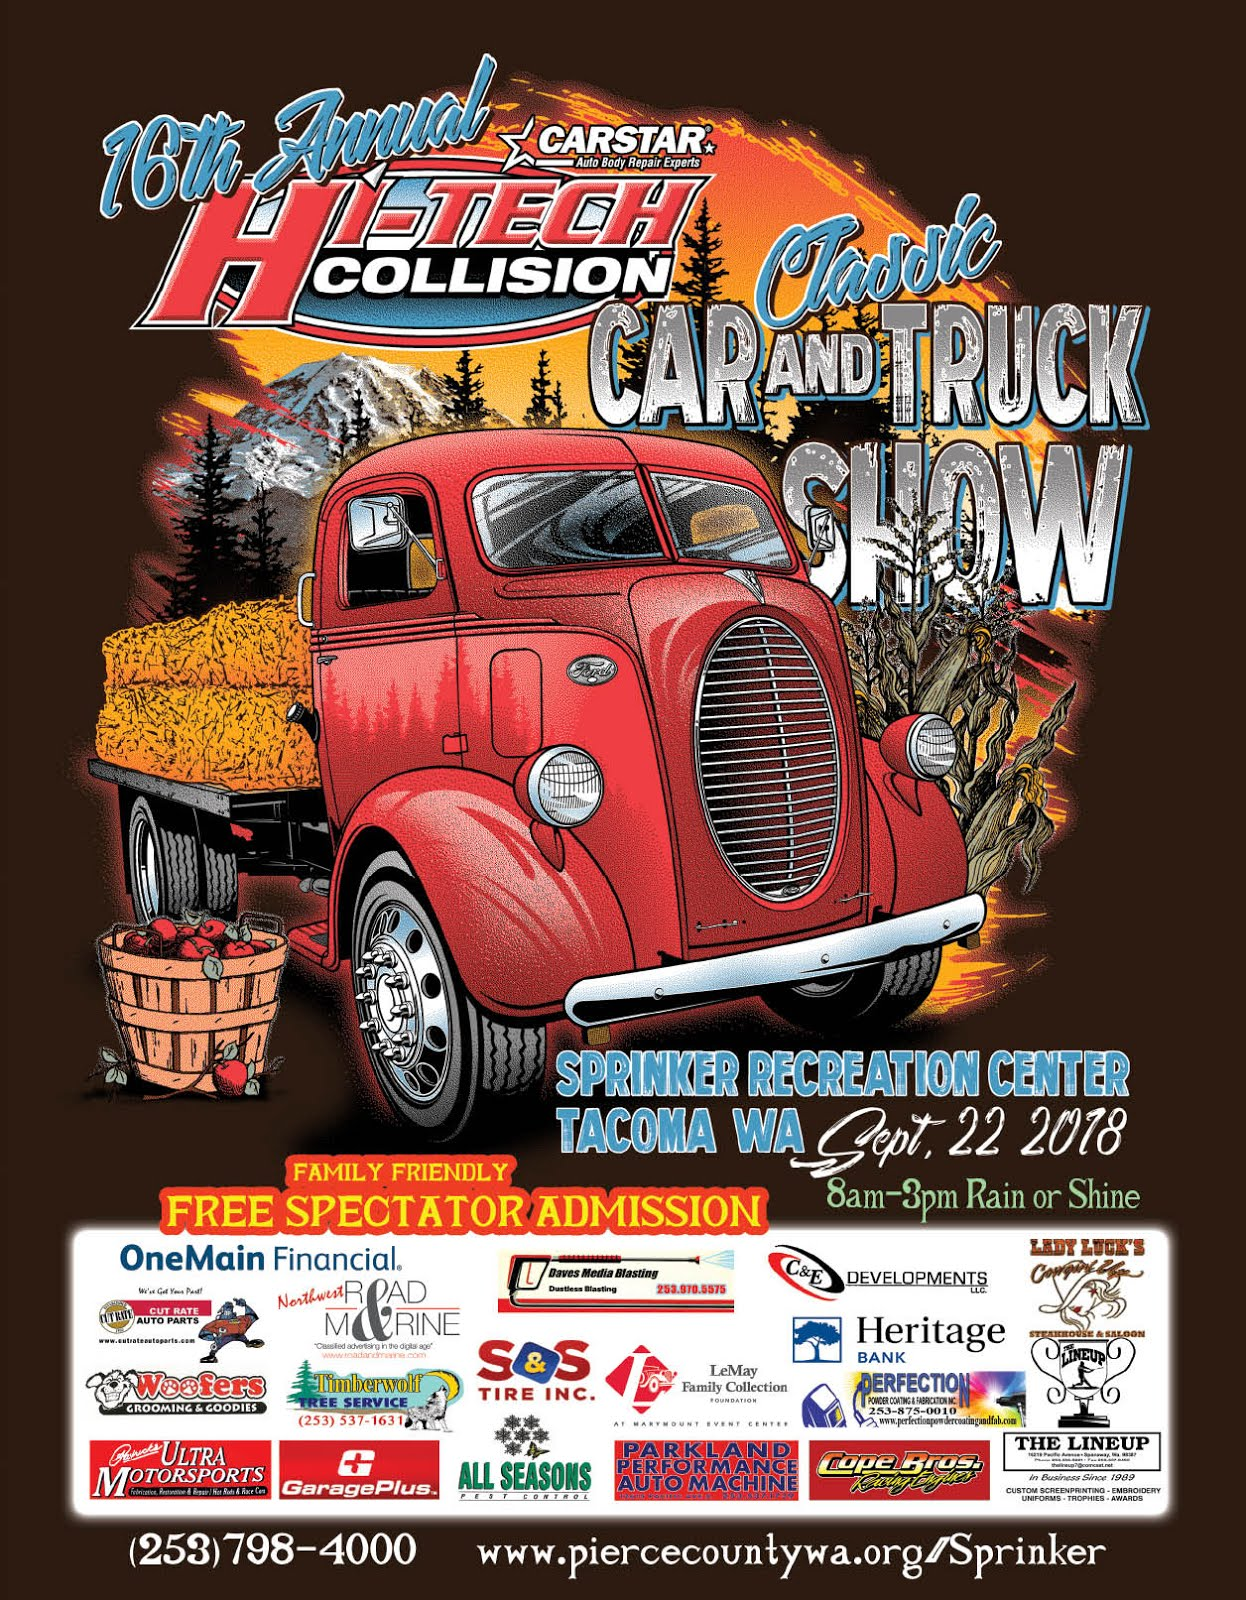 16th Annual Carstar Hi-Tech Collision Classic Car & Truck Show! 500+ Classic Cars and Trucks!!